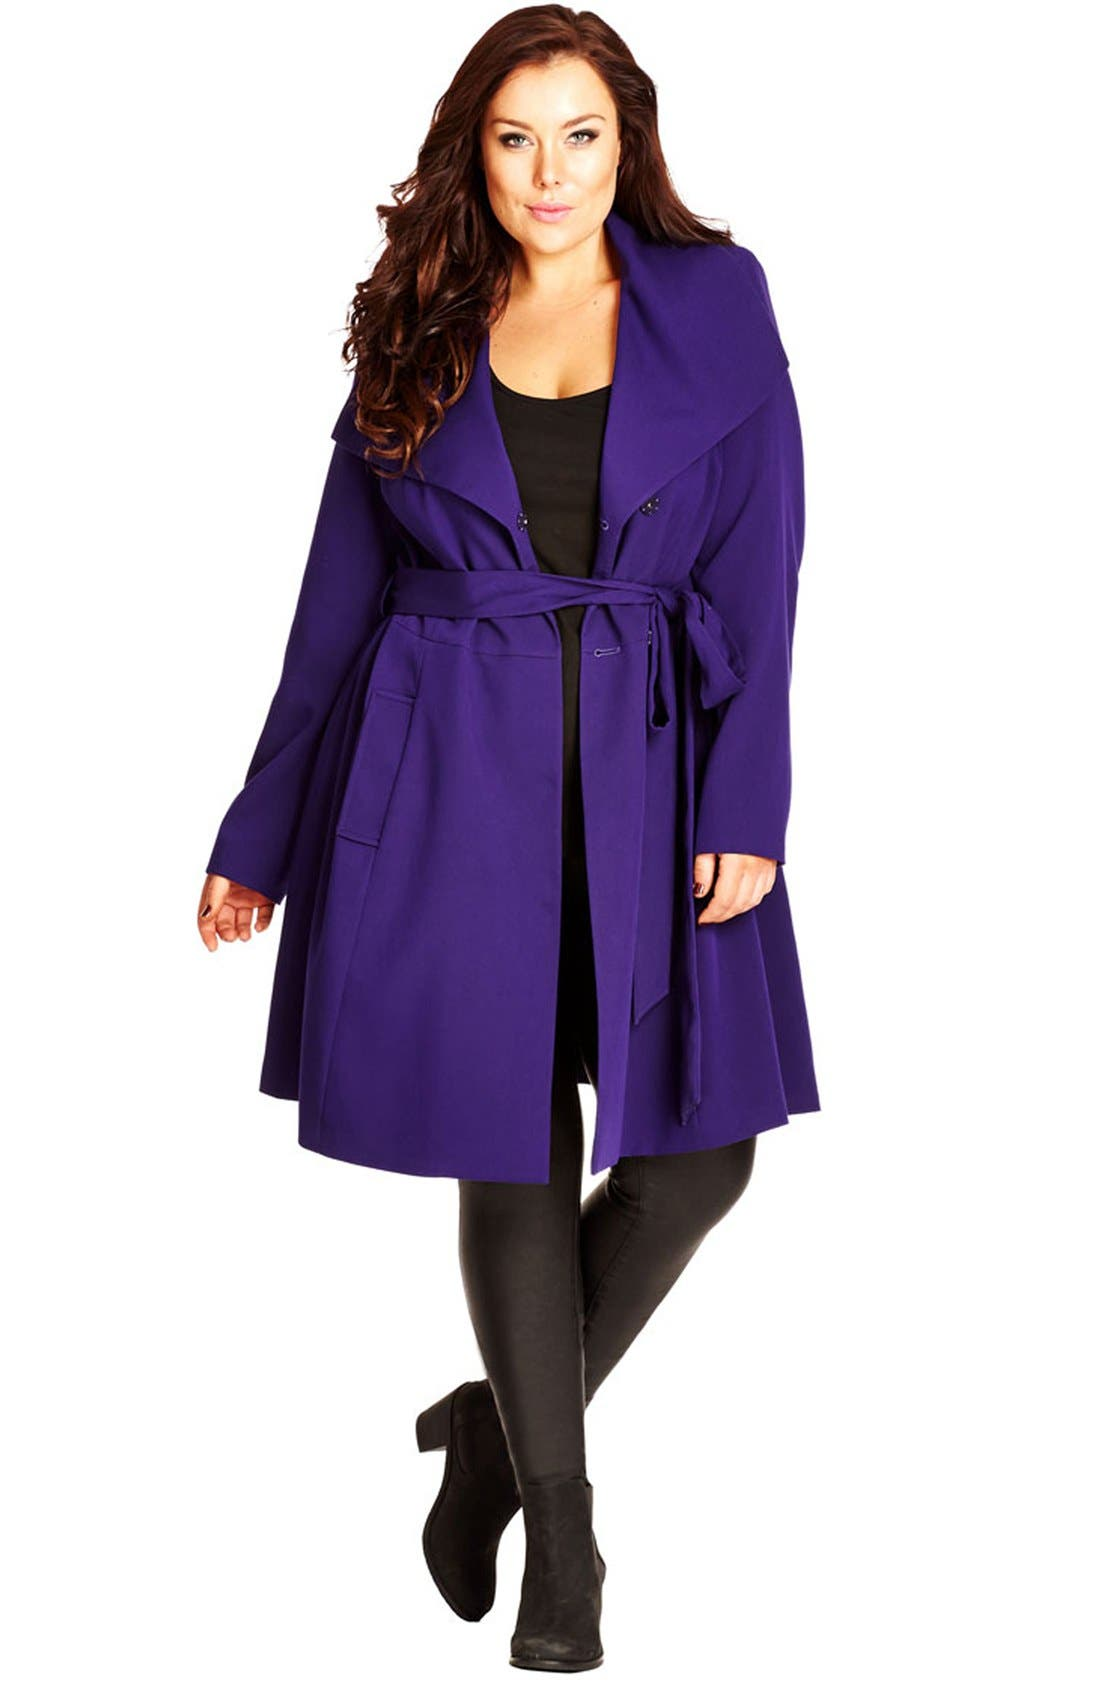 Alternate Image 1 Selected - City Chic 'So Chic' Colored Trench Coat (Plus Size)